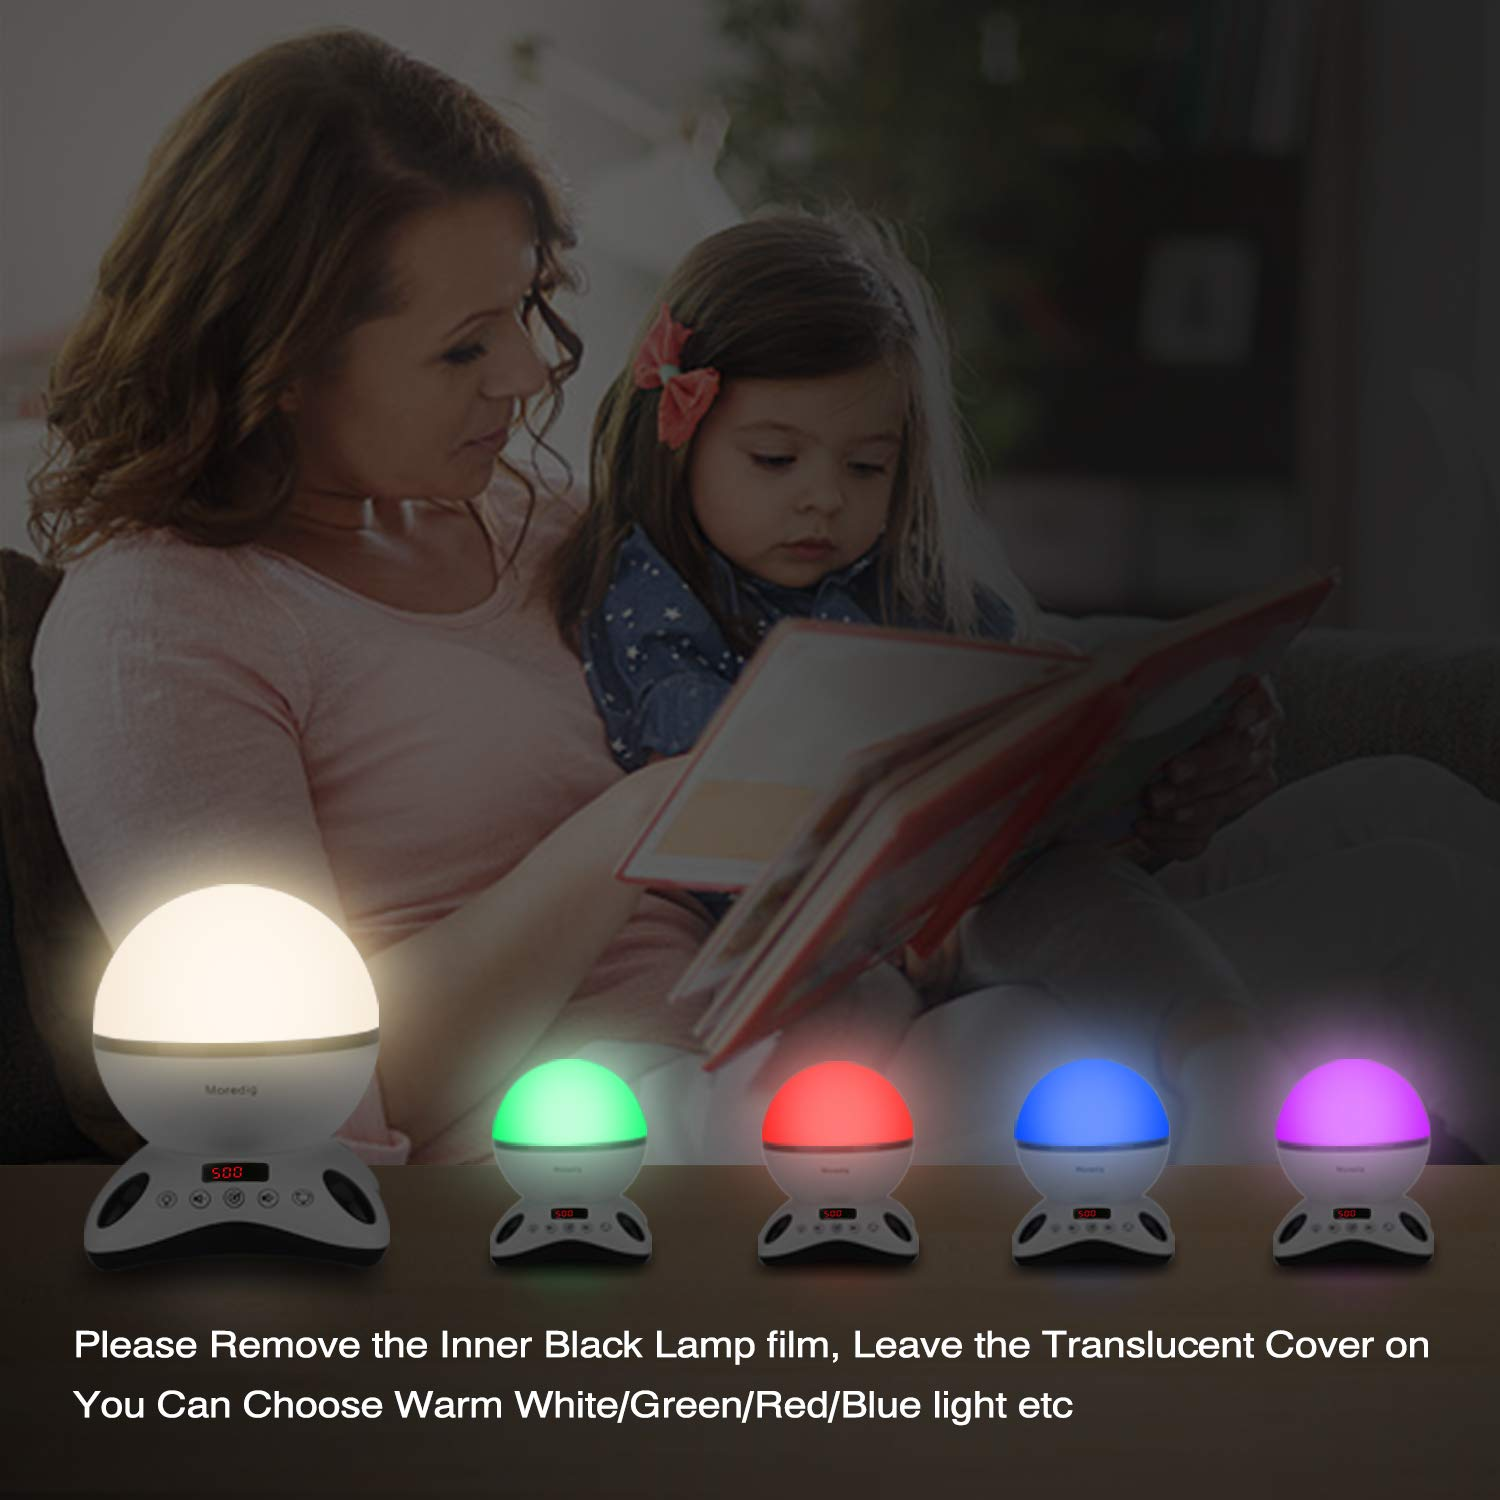 Parties Black White Moredig Night Light Projector Remote Control and Timer Design Projection lamp Built-in 12 Light Songs 360 Degree Rotating 8 Colorful Lights Children Kids Gift for Birthday